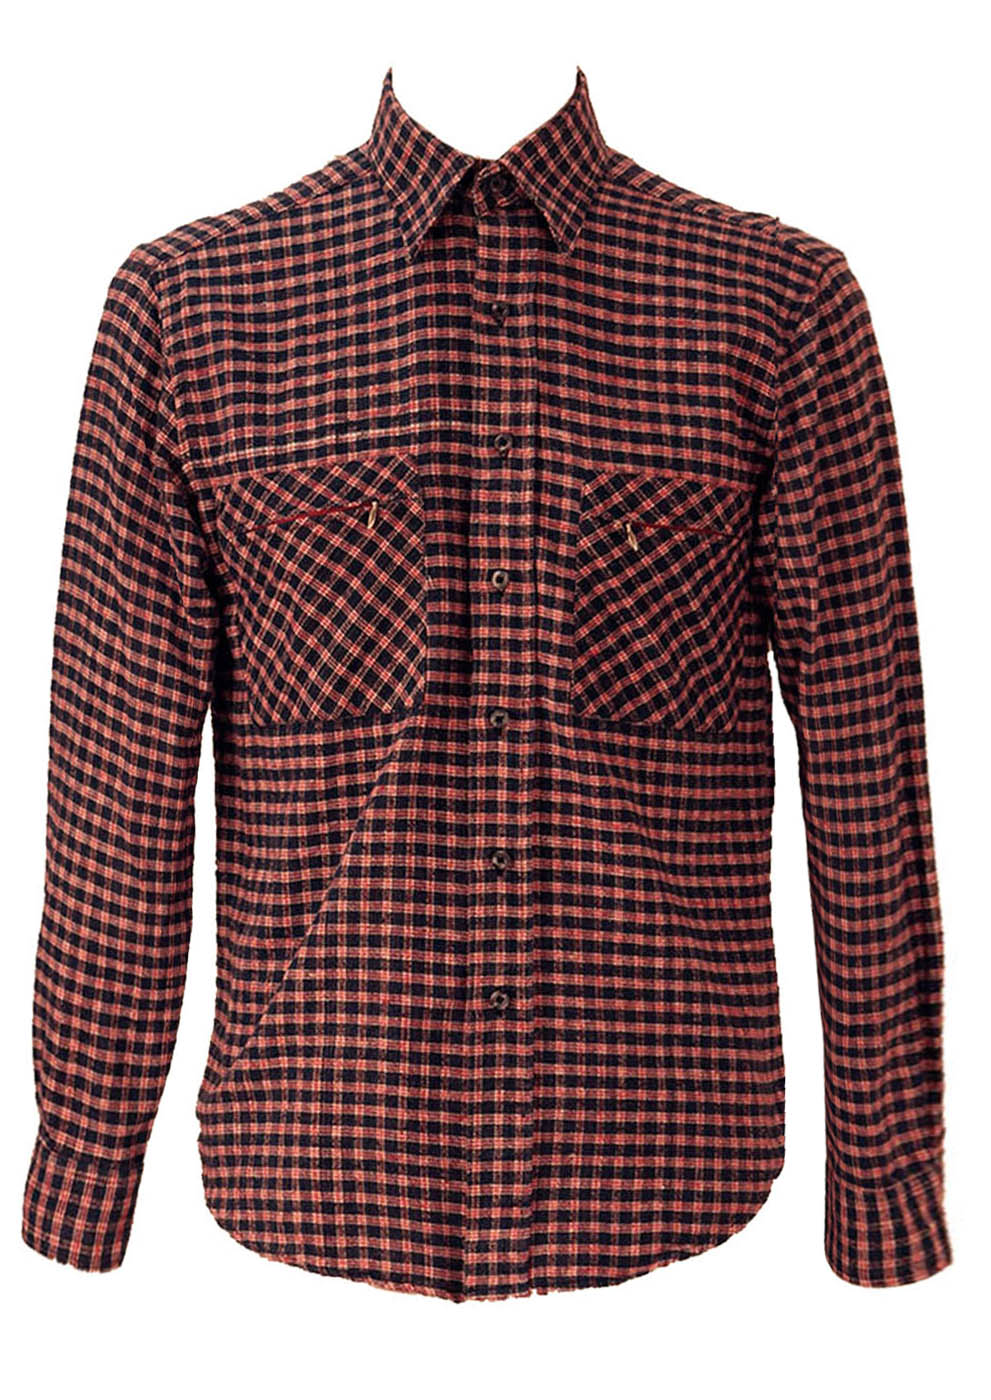 Navy blue red and white checked flannel shirt m reign for Navy blue and red flannel shirt